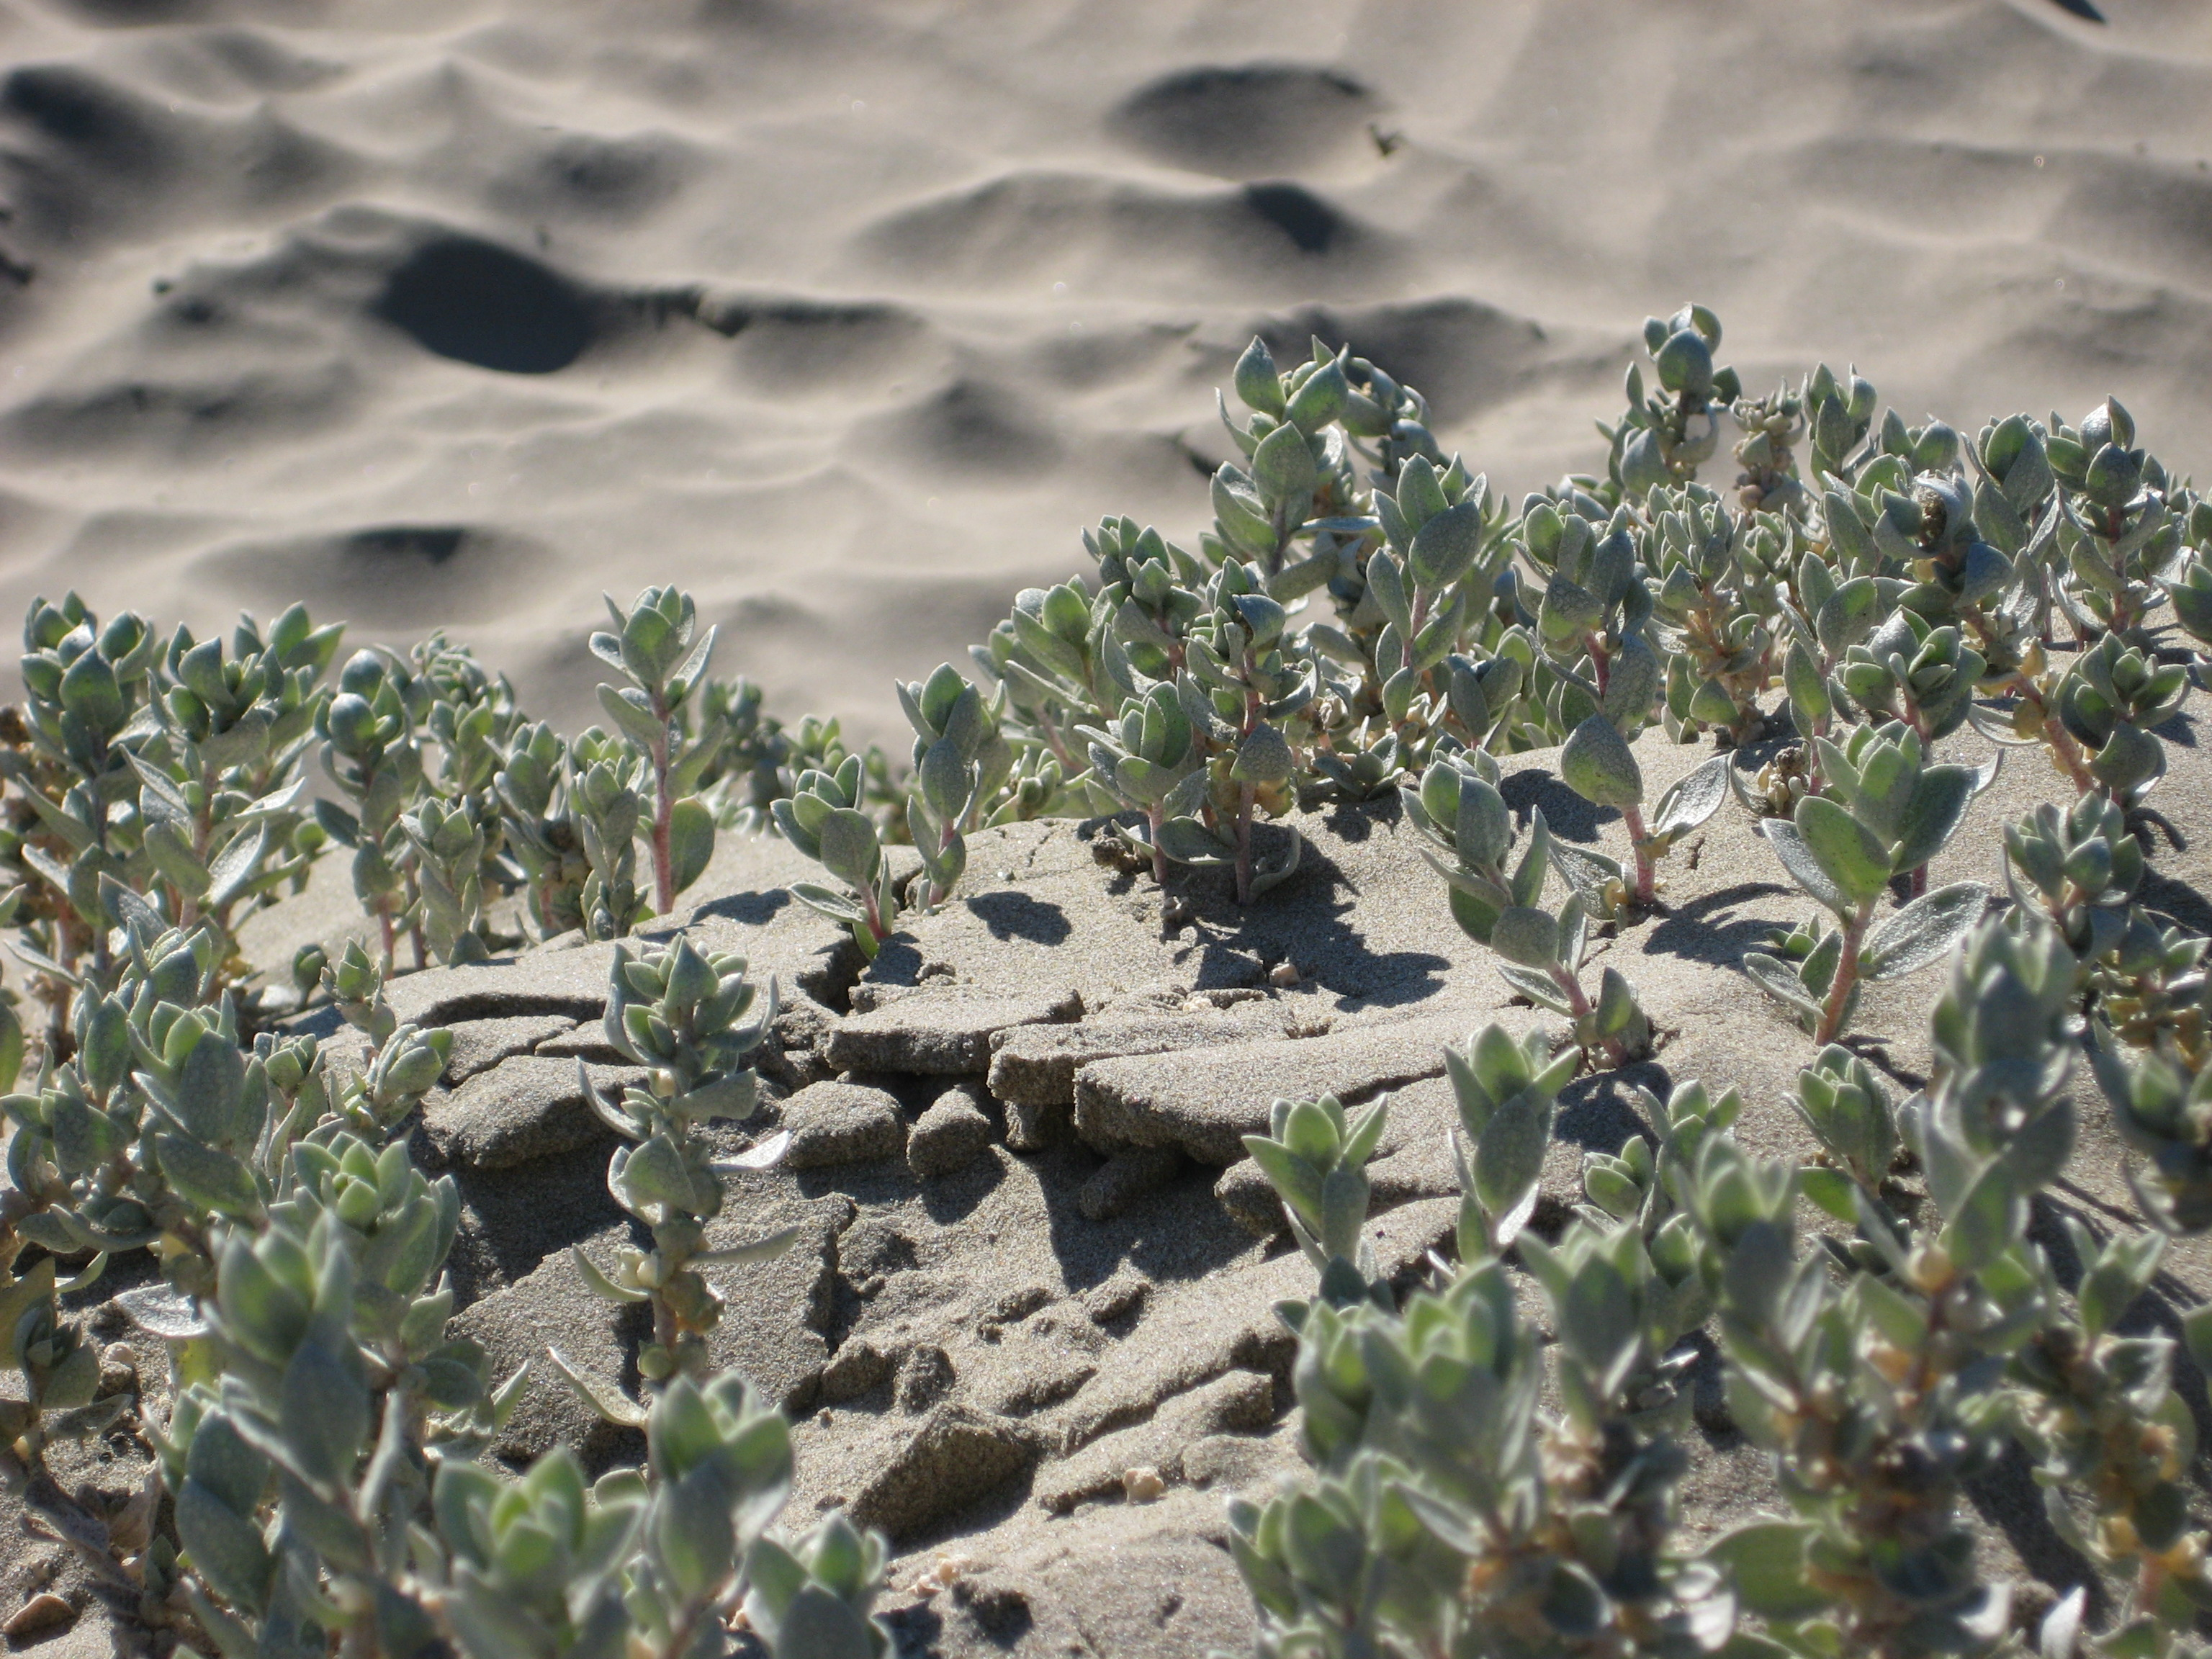 Succulent plants growing in the beach sand in Morro Bay, California.